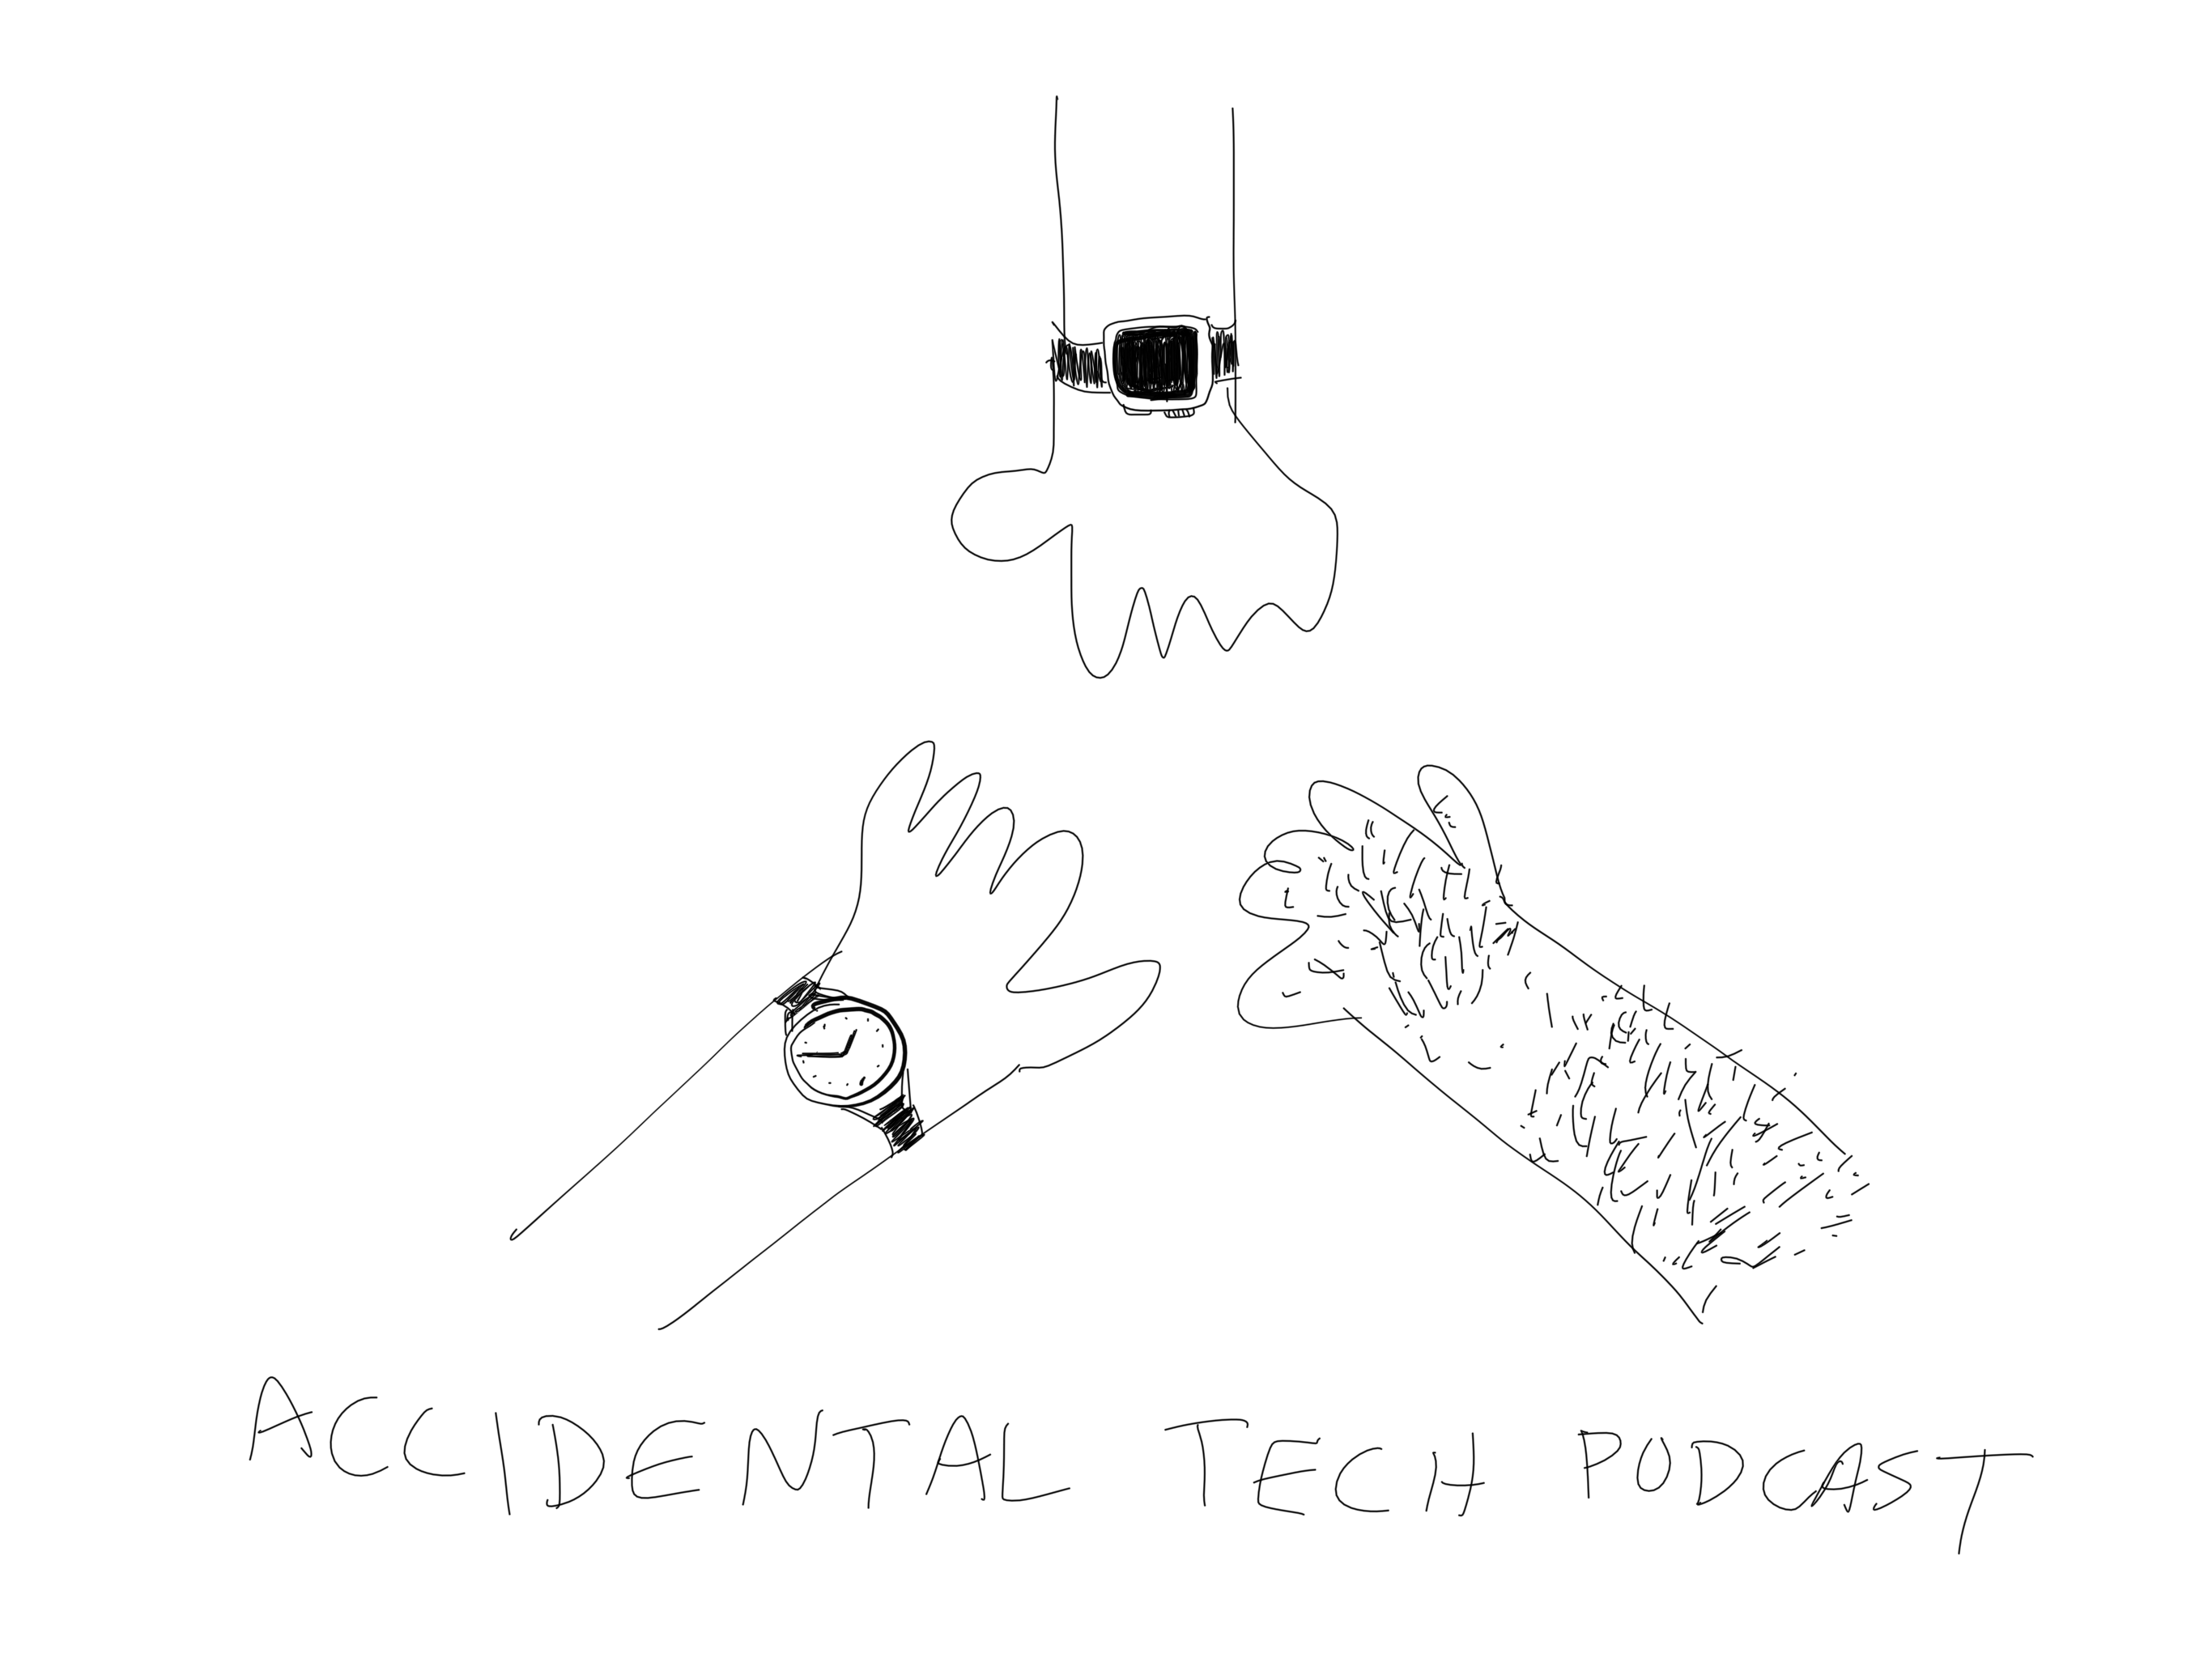 Accidental Tech Podcast | Global Player